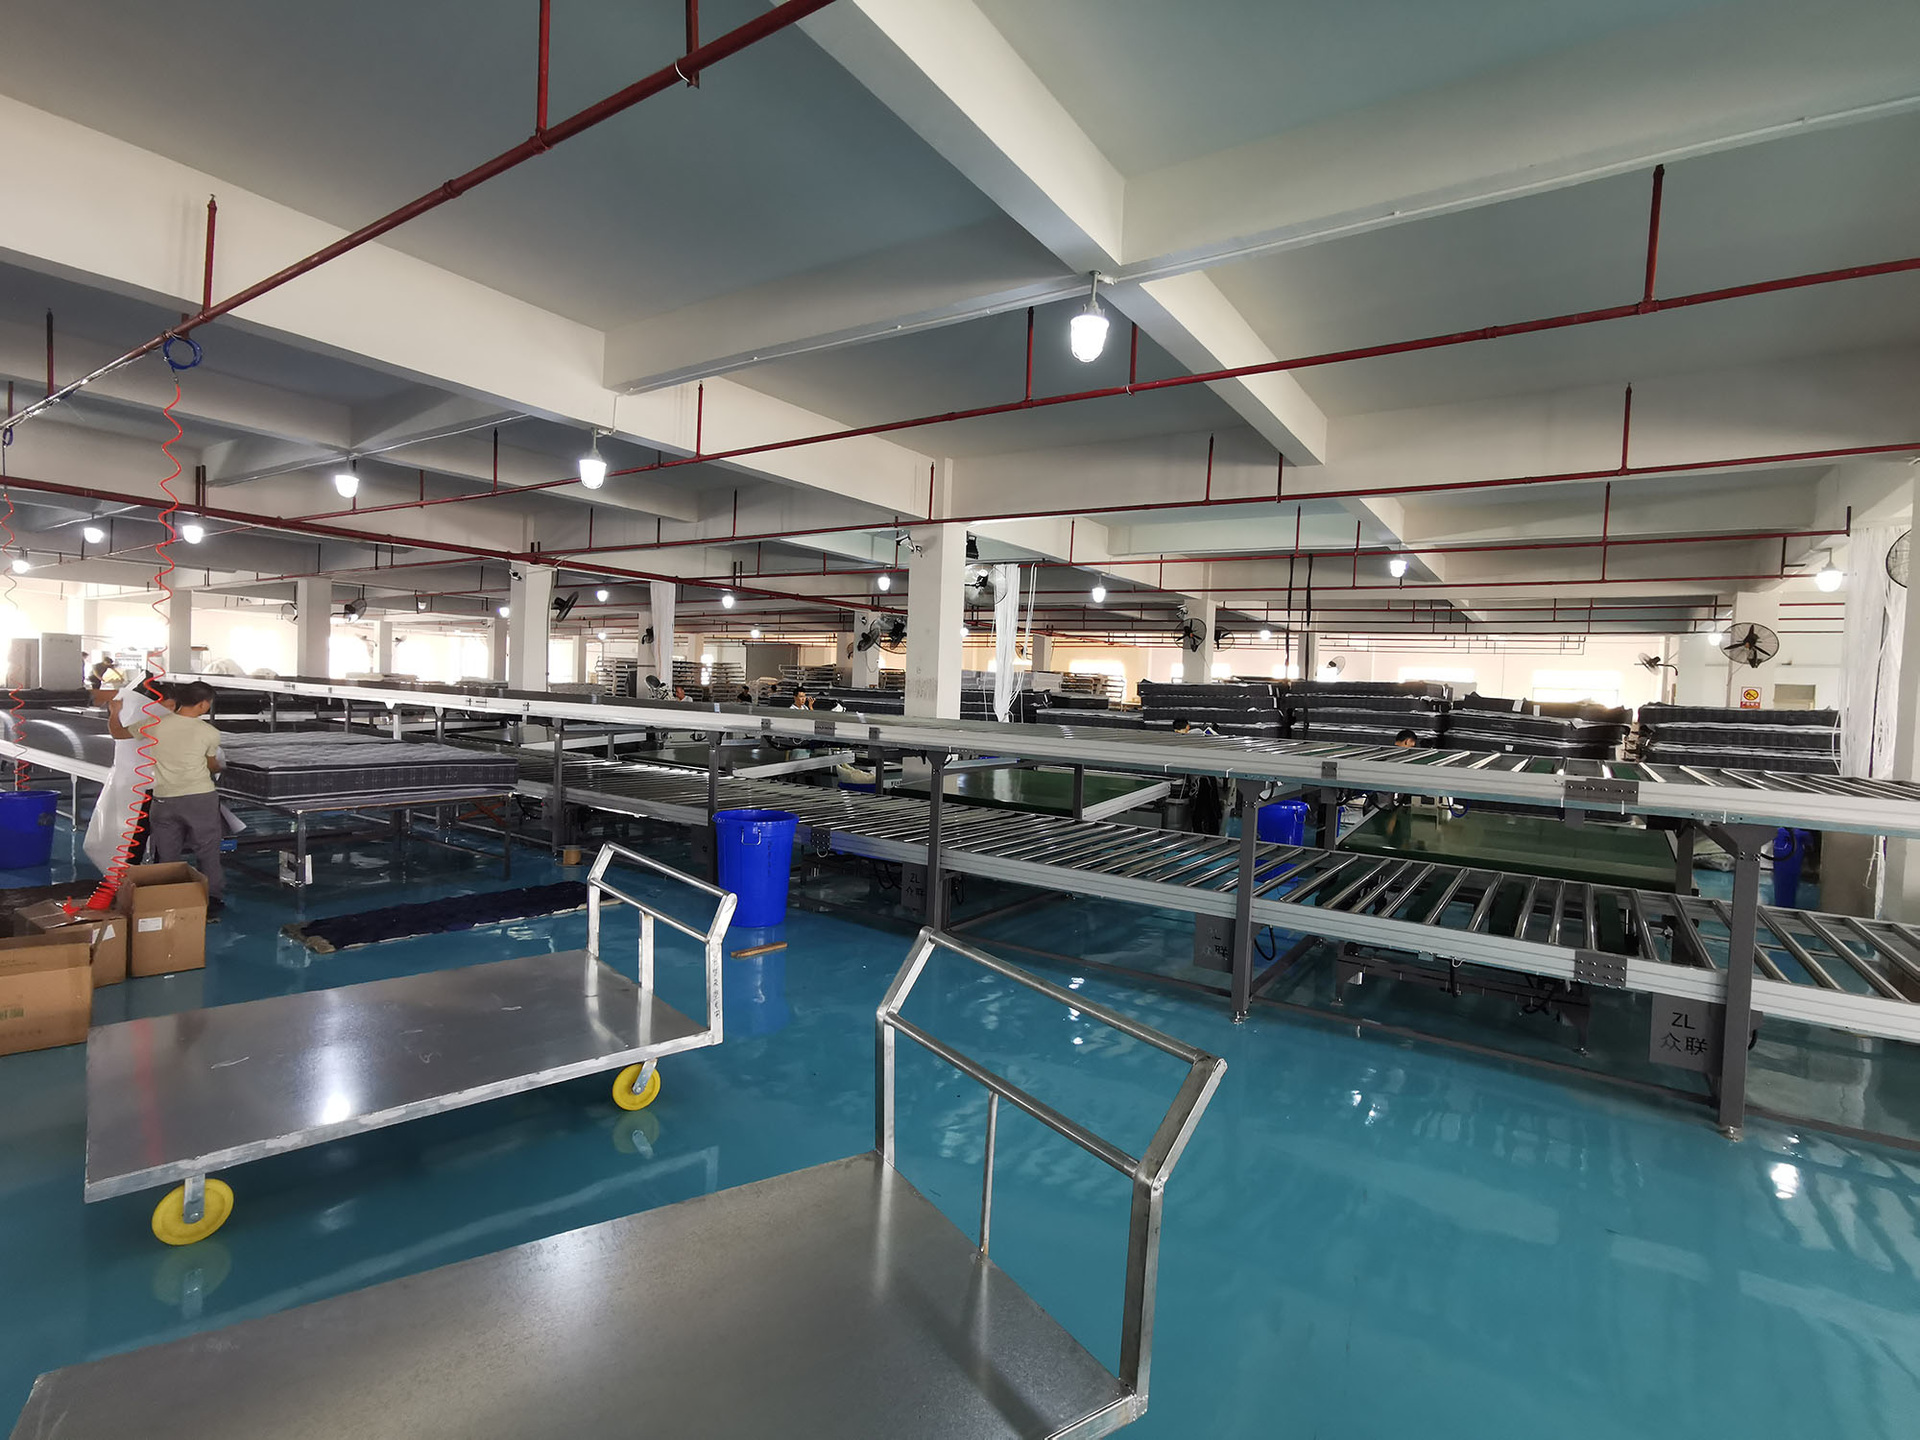 RAYSON SPRING BED MATTRESS PRODUCTION